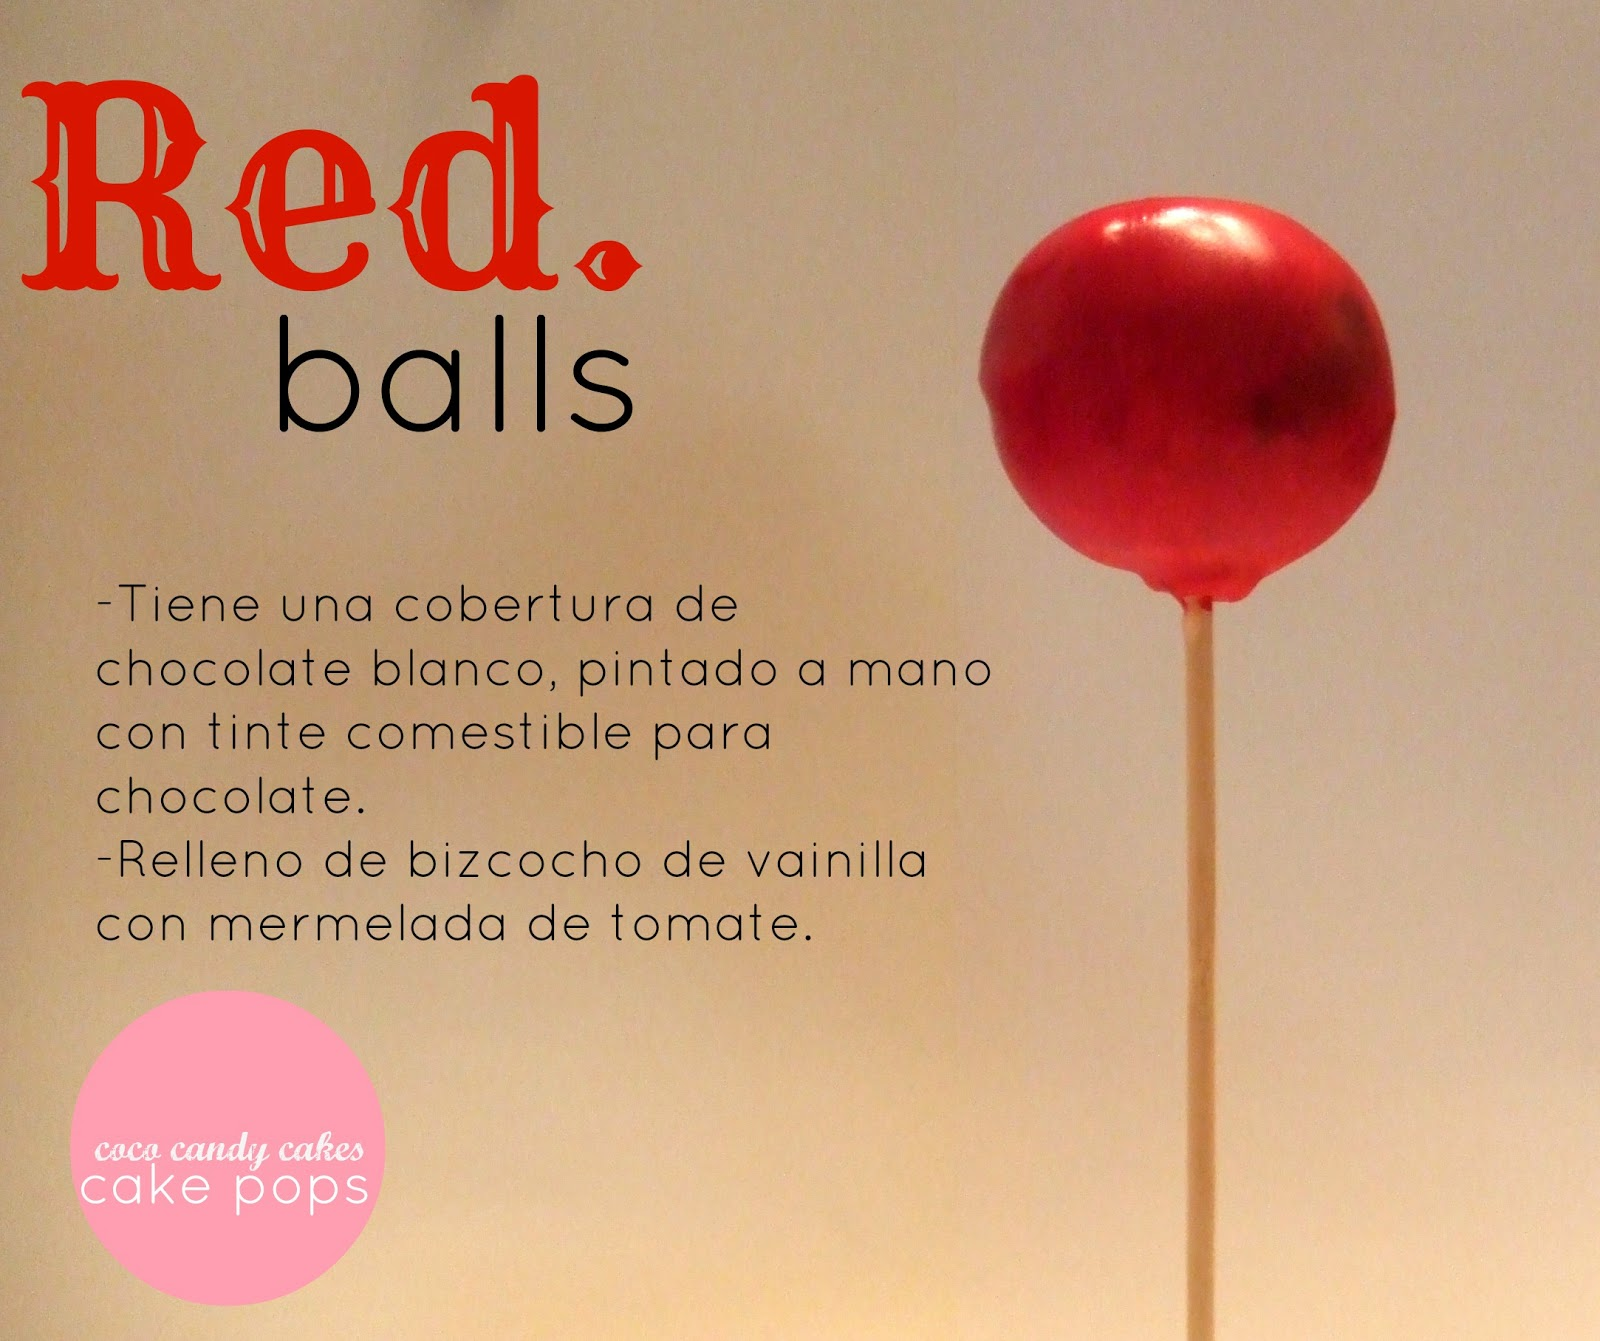 Coco candy cakes three balls cake pops new colection for Cake pops cobertura